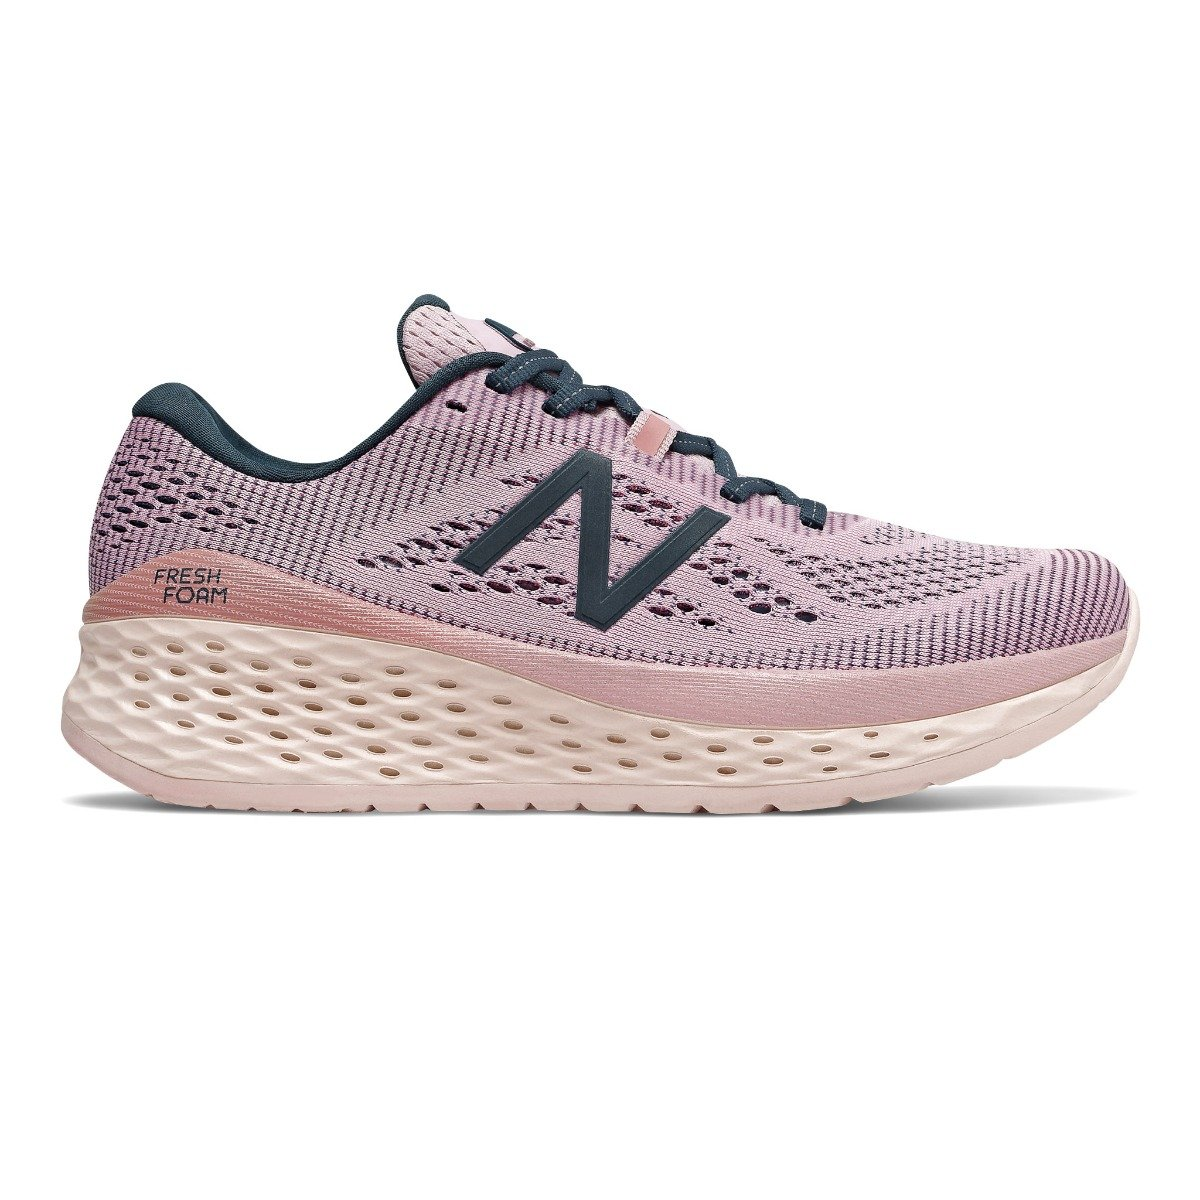 New Balance Fresh Foam More dame